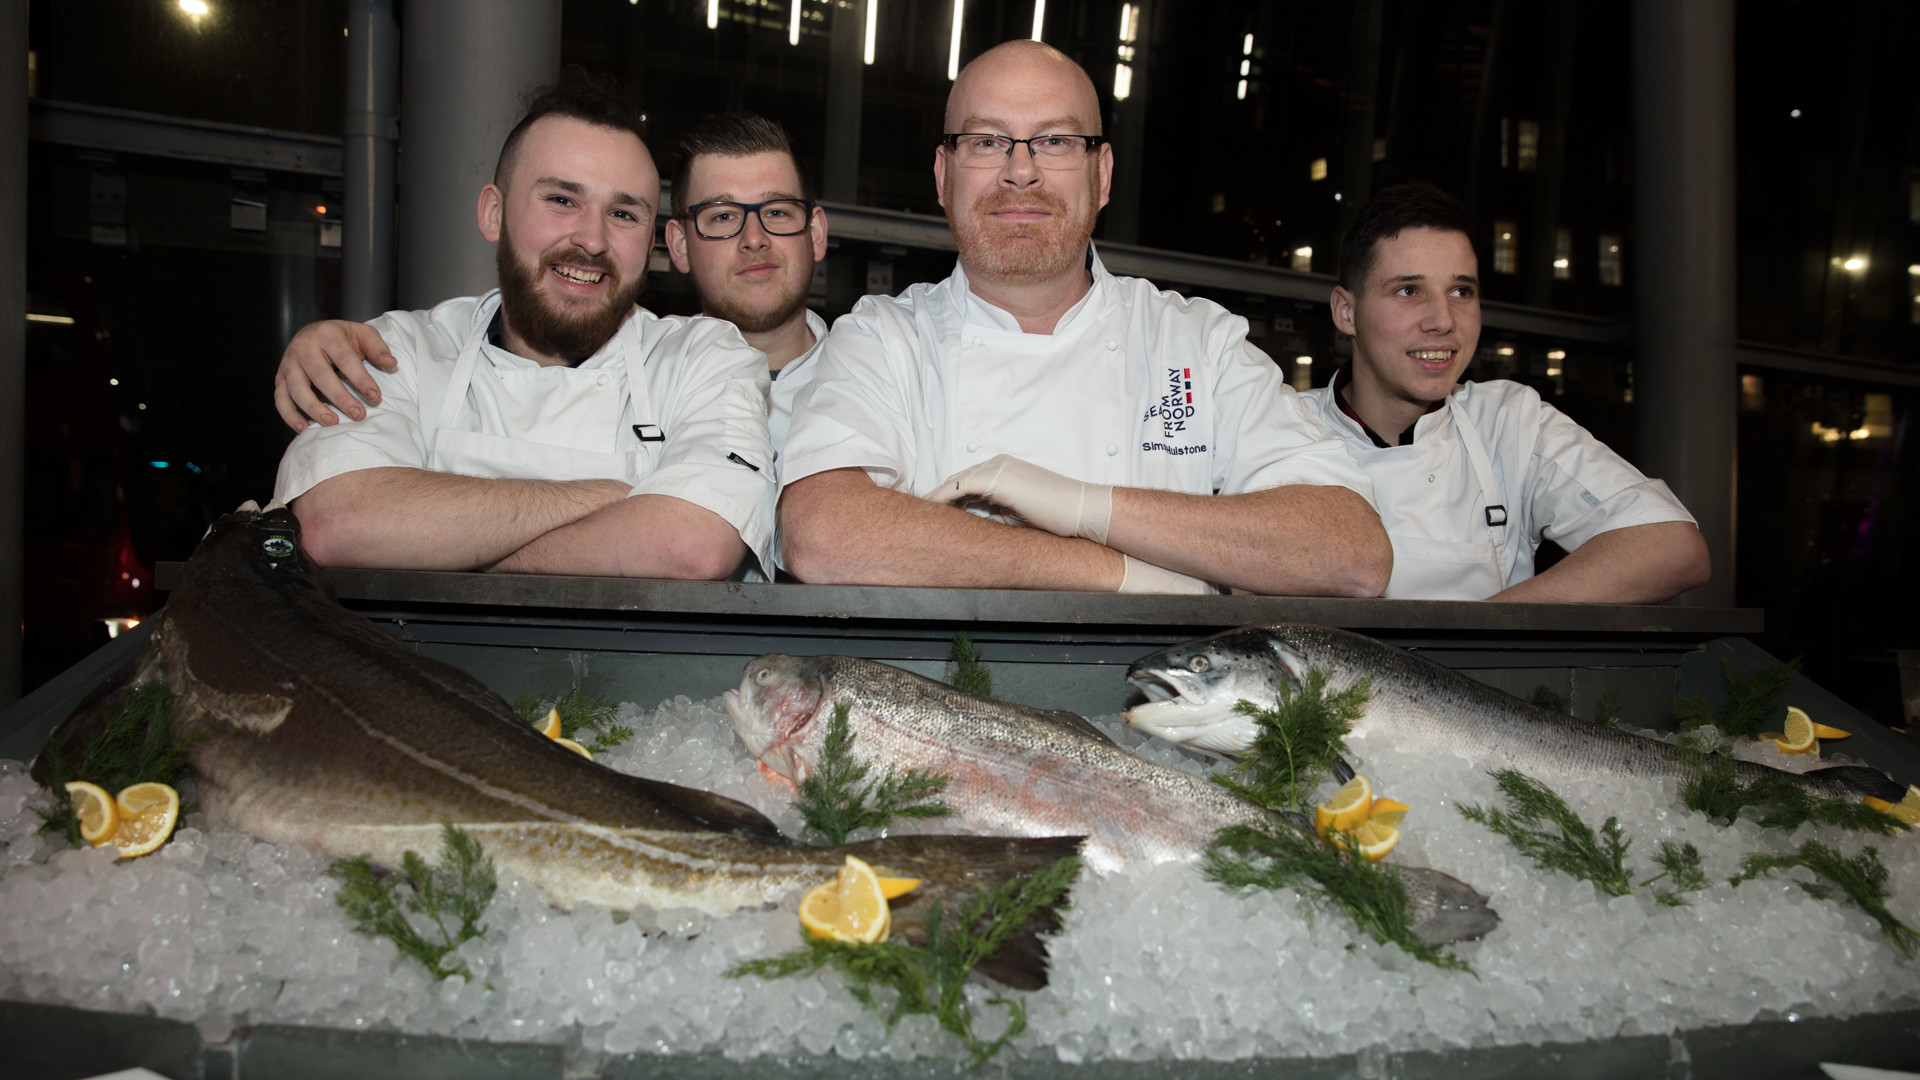 Simon Hulstone and his team, who served Seafood from Norway's Skrei cod and fjord trout at the event